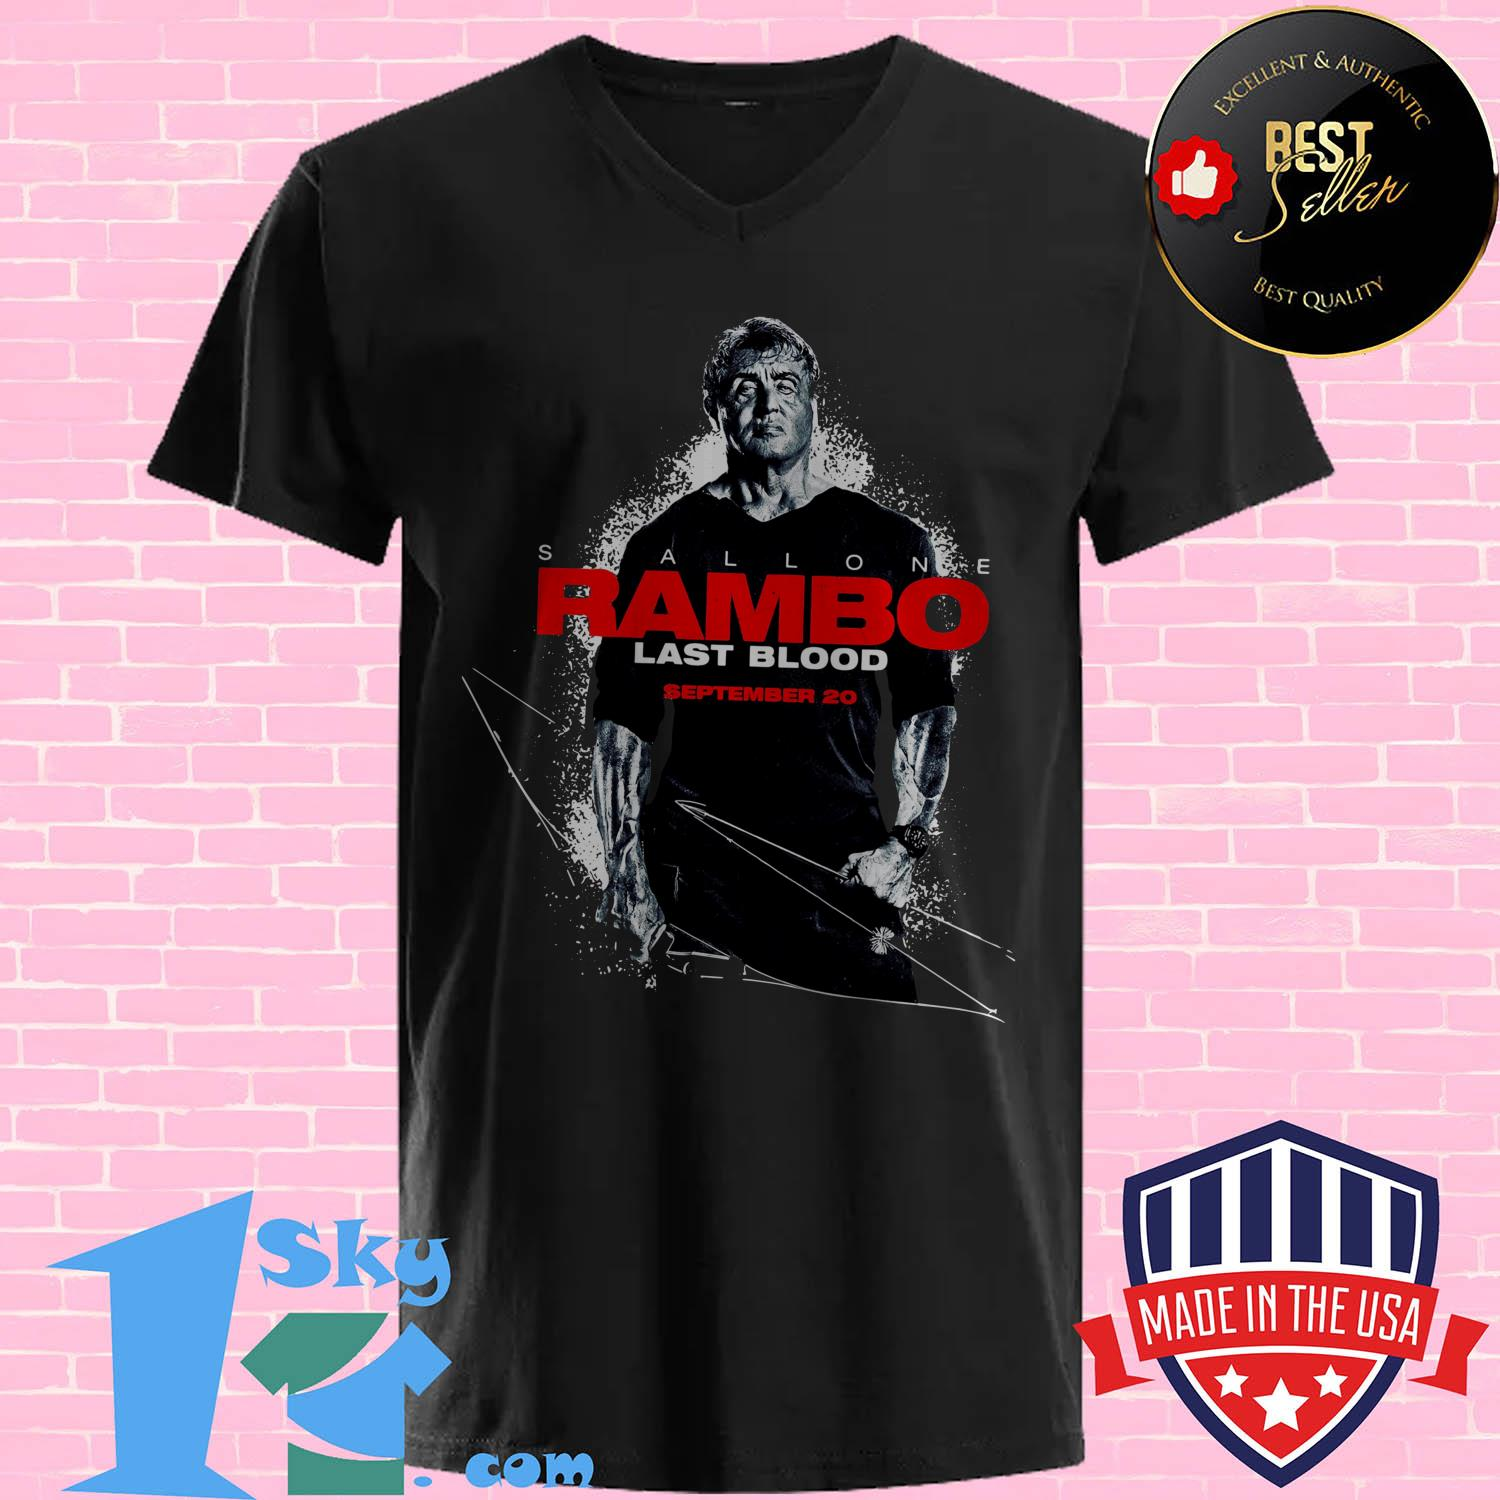 stallone rambo last blood september 20 v neck - Stallone Rambo Last Blood September 20 shirt